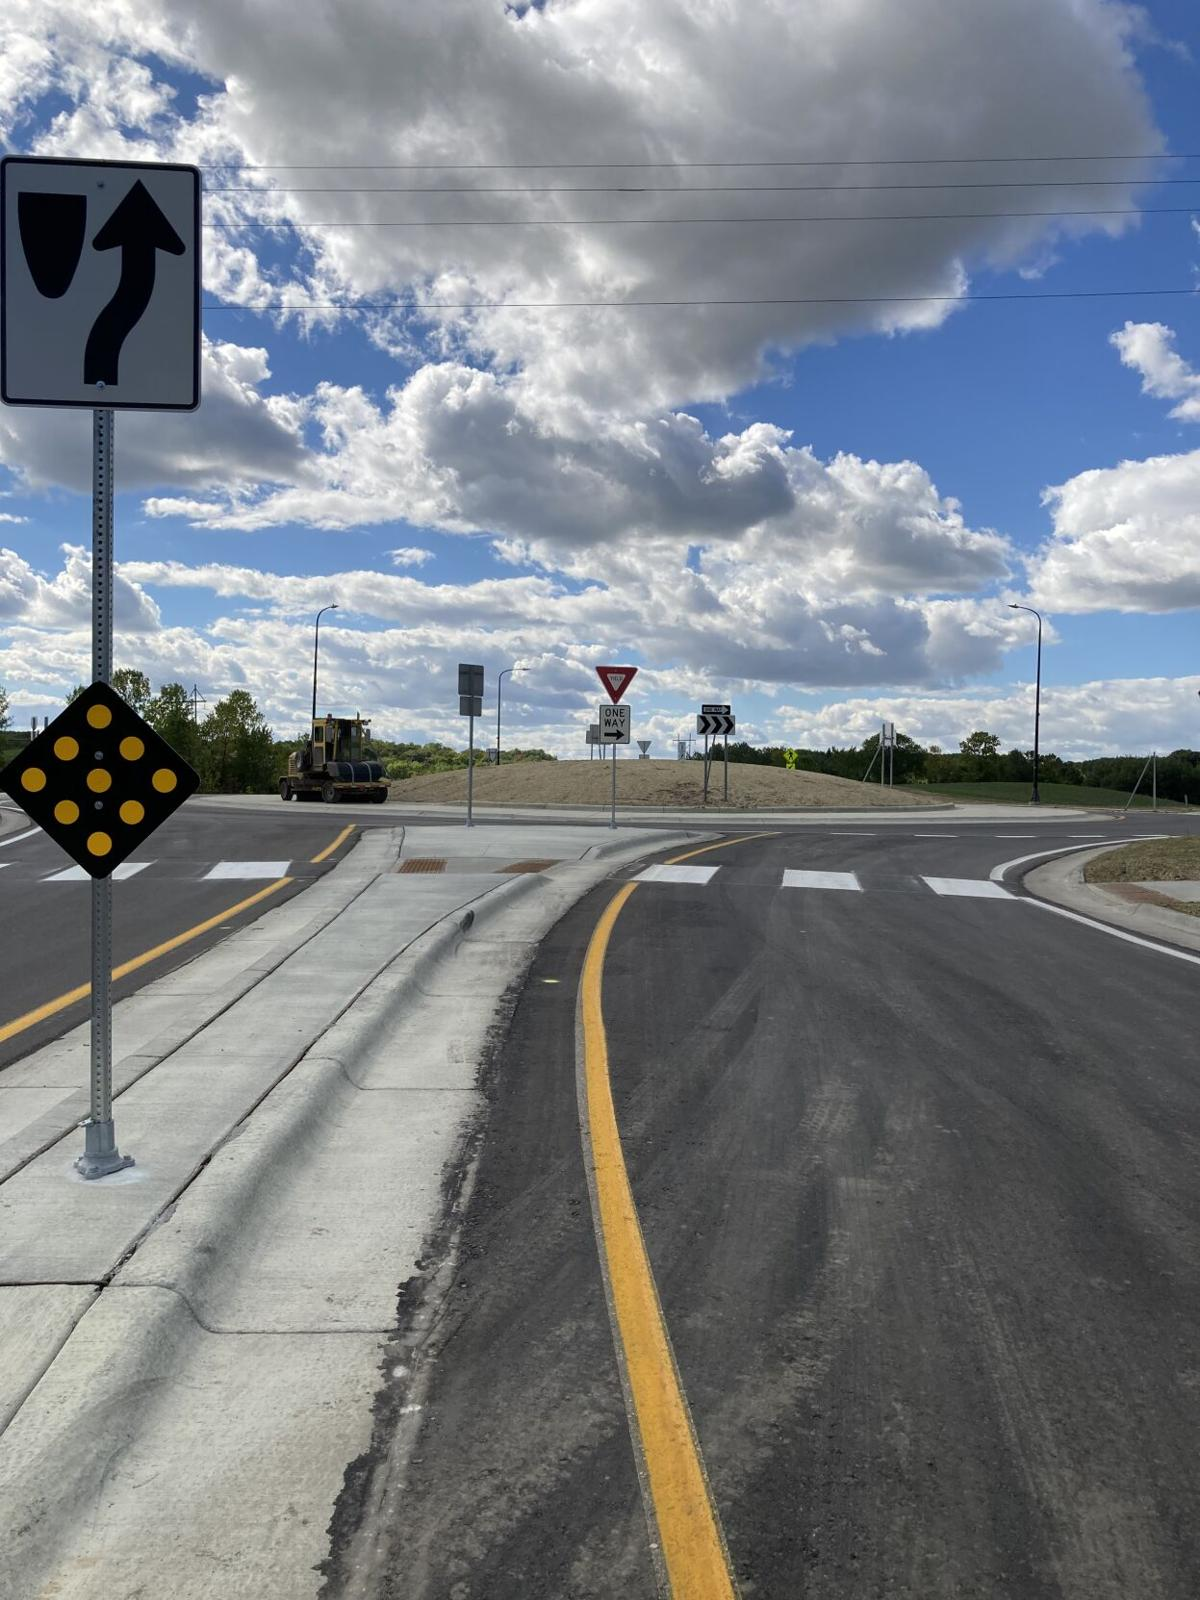 Roundabout complete at Douglas County road 40 and 8 intersection.